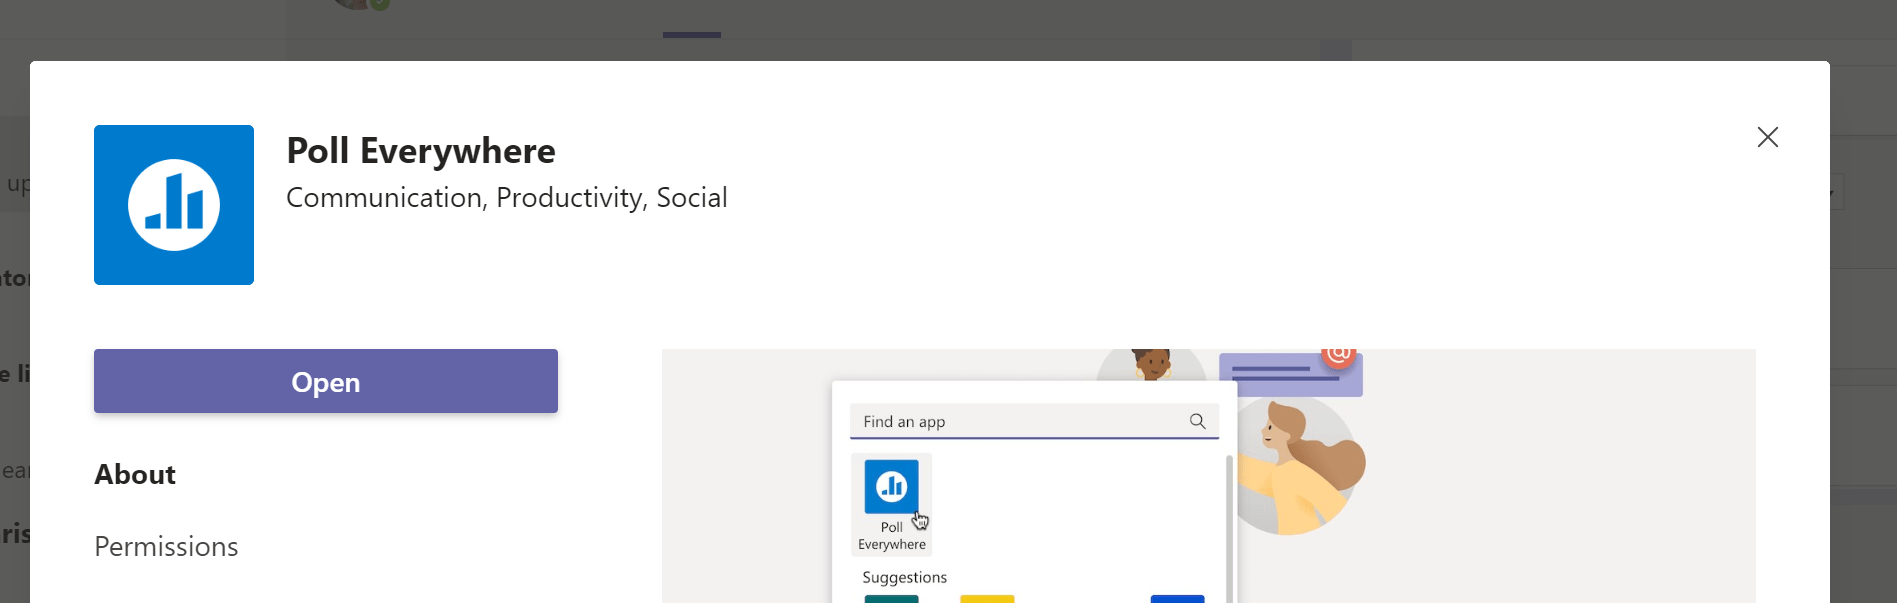 Screenshot showing the Poll Everywhere plugin being added to MS Teams.